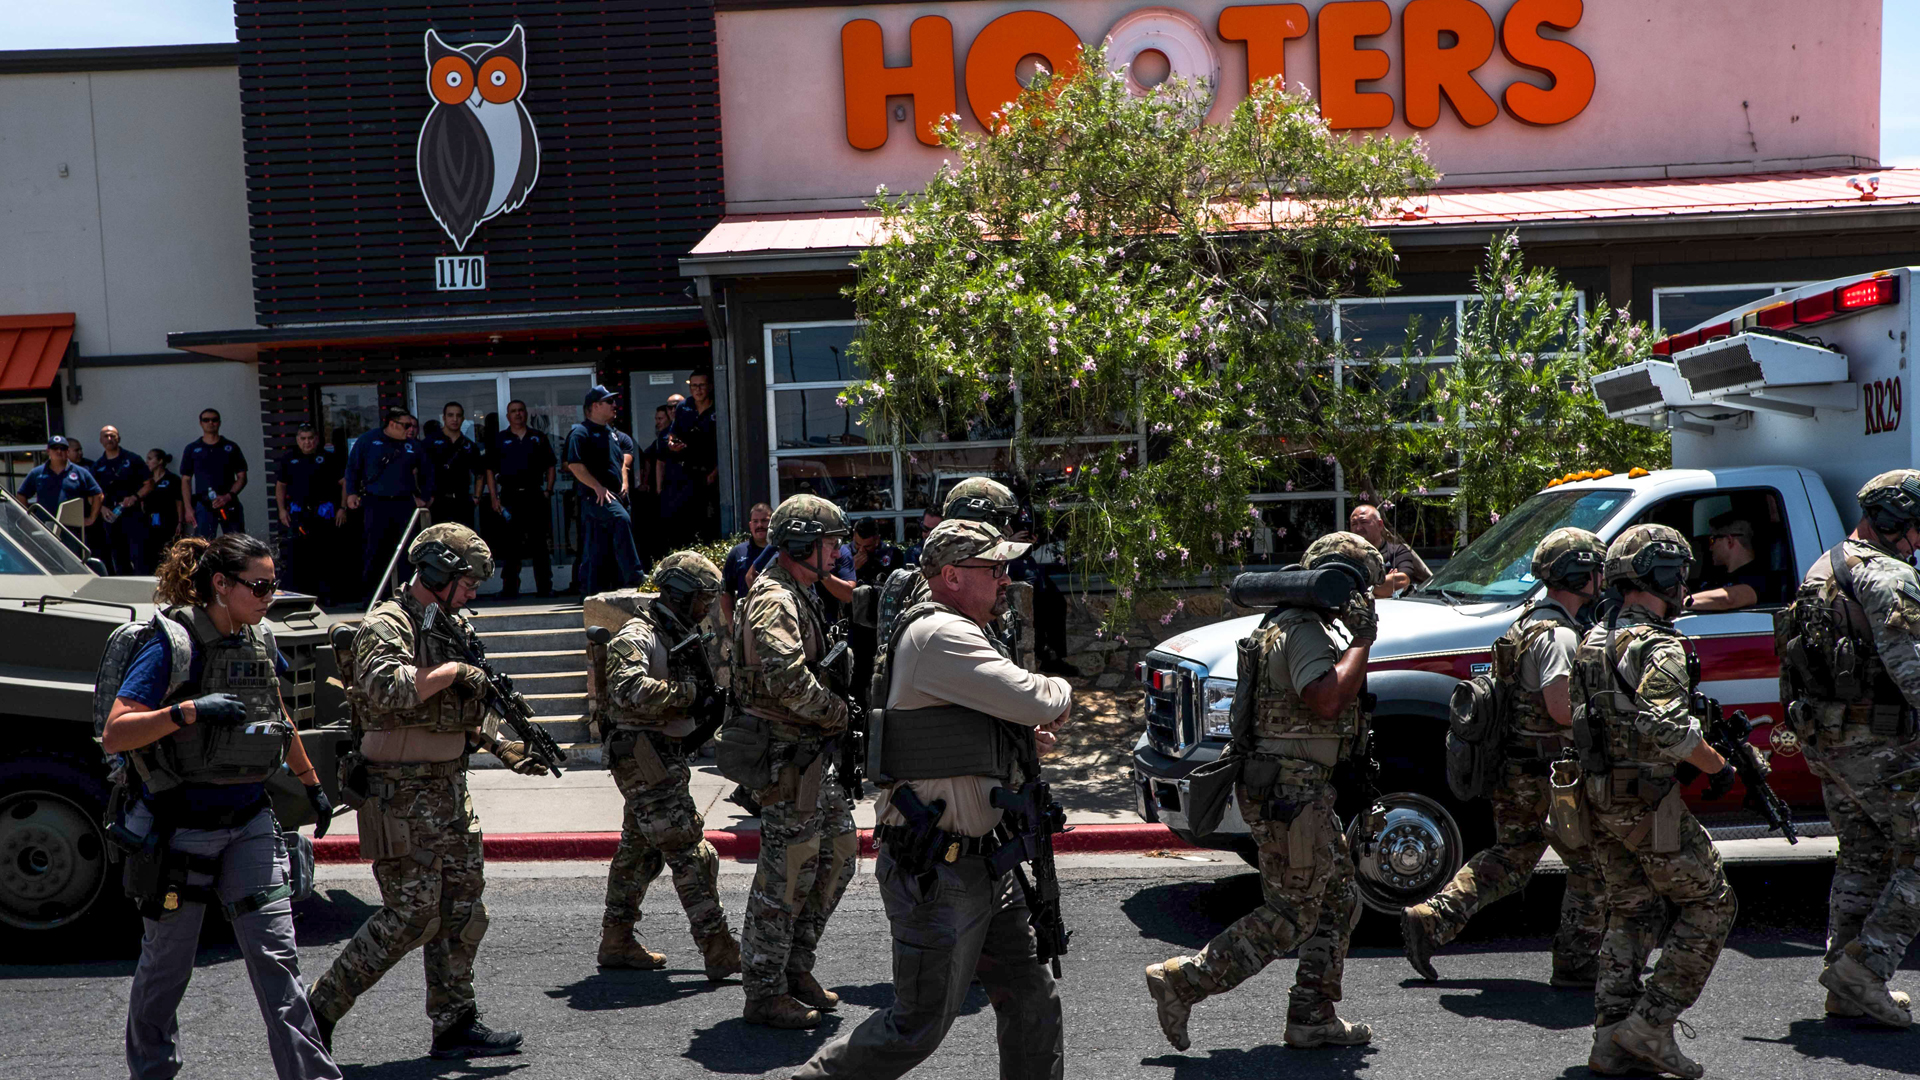 Law enforcement agencies respond to an active shooter at a Walmart near Cielo Vista Mall in El Paso, Texas, on Aug. 3, 2019. (Credit: Joel Angel Juarez/AFP/Getty Images)